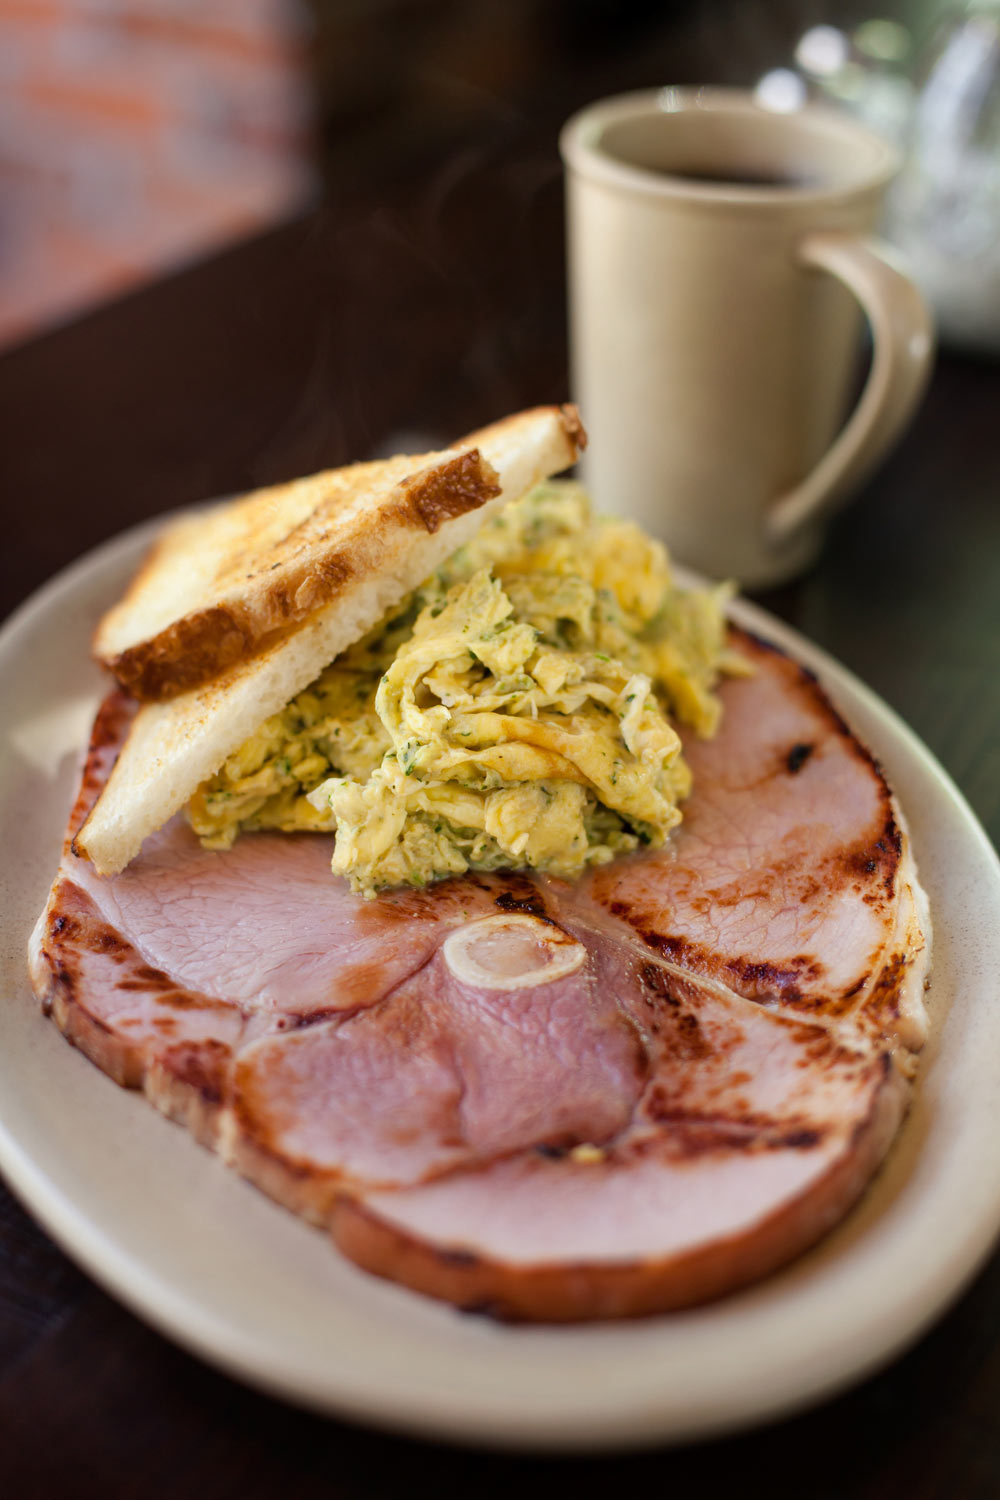 Food_photography_Green_eggs_toast_brunch_ham_grilled_coffee.jpg